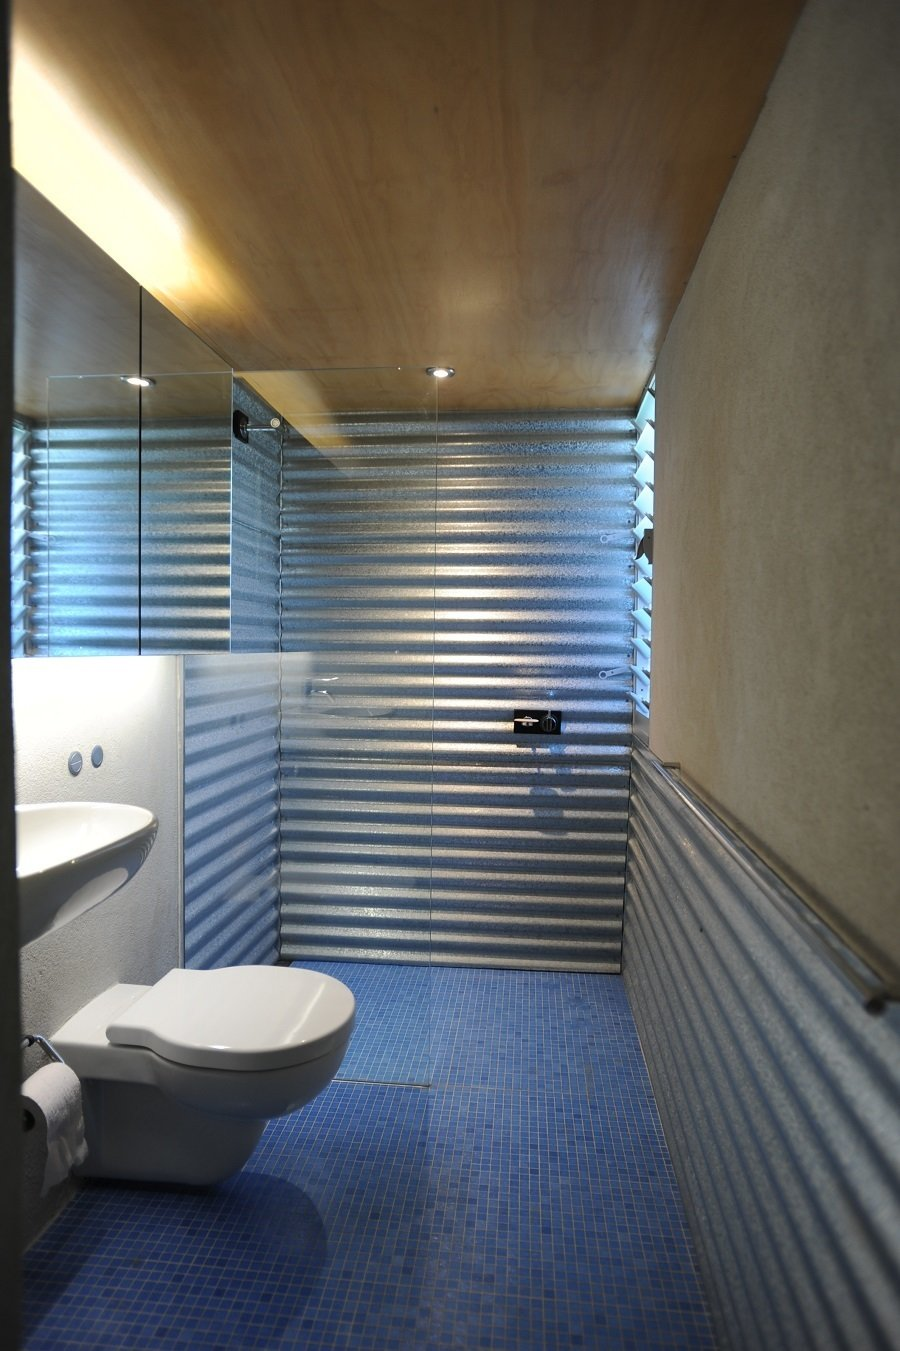 """The blue bathroom tiles were inspired by a """"Corbusian use of color,"""" according to the architect, and take advantage of the lowered floor to create a metaphorical step into a pool. The corrugated metal continues throughout, even wrapping around the walls of the shower.  Photo 7 of 10 in Compact Australian Home Clad in Steel and Concrete"""